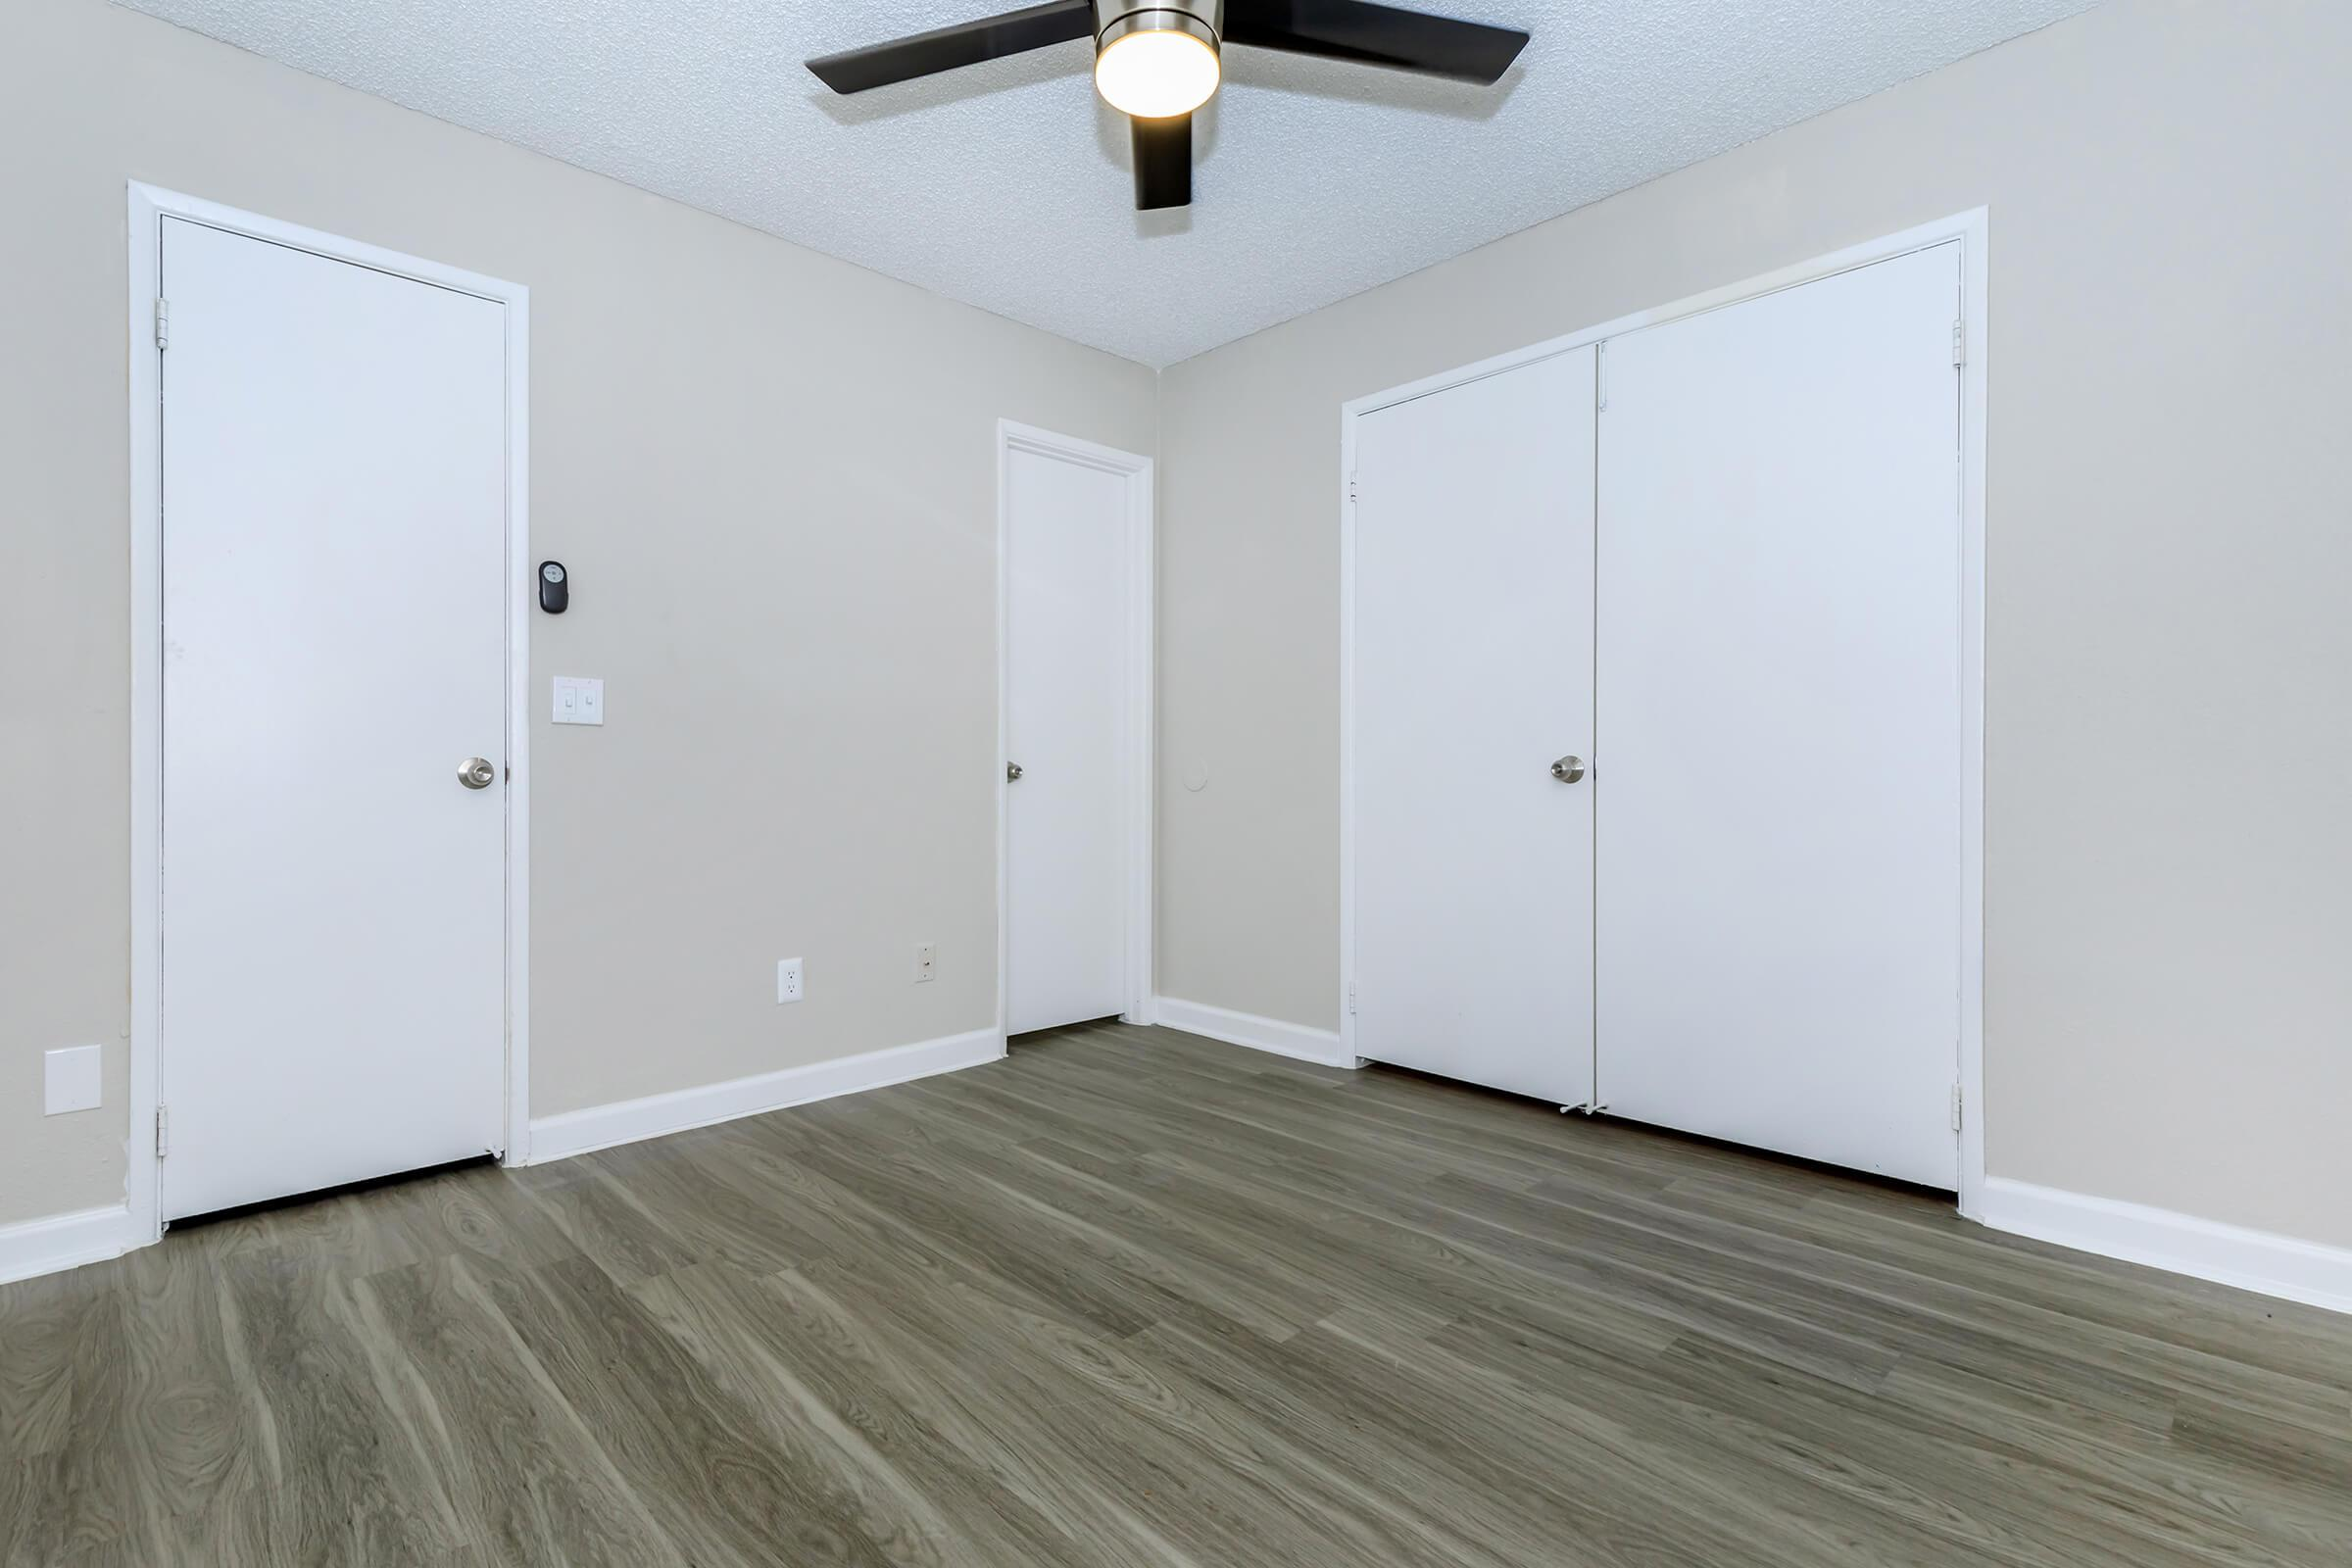 CEILING FANS AND WOOD-LIKE  FLOORS